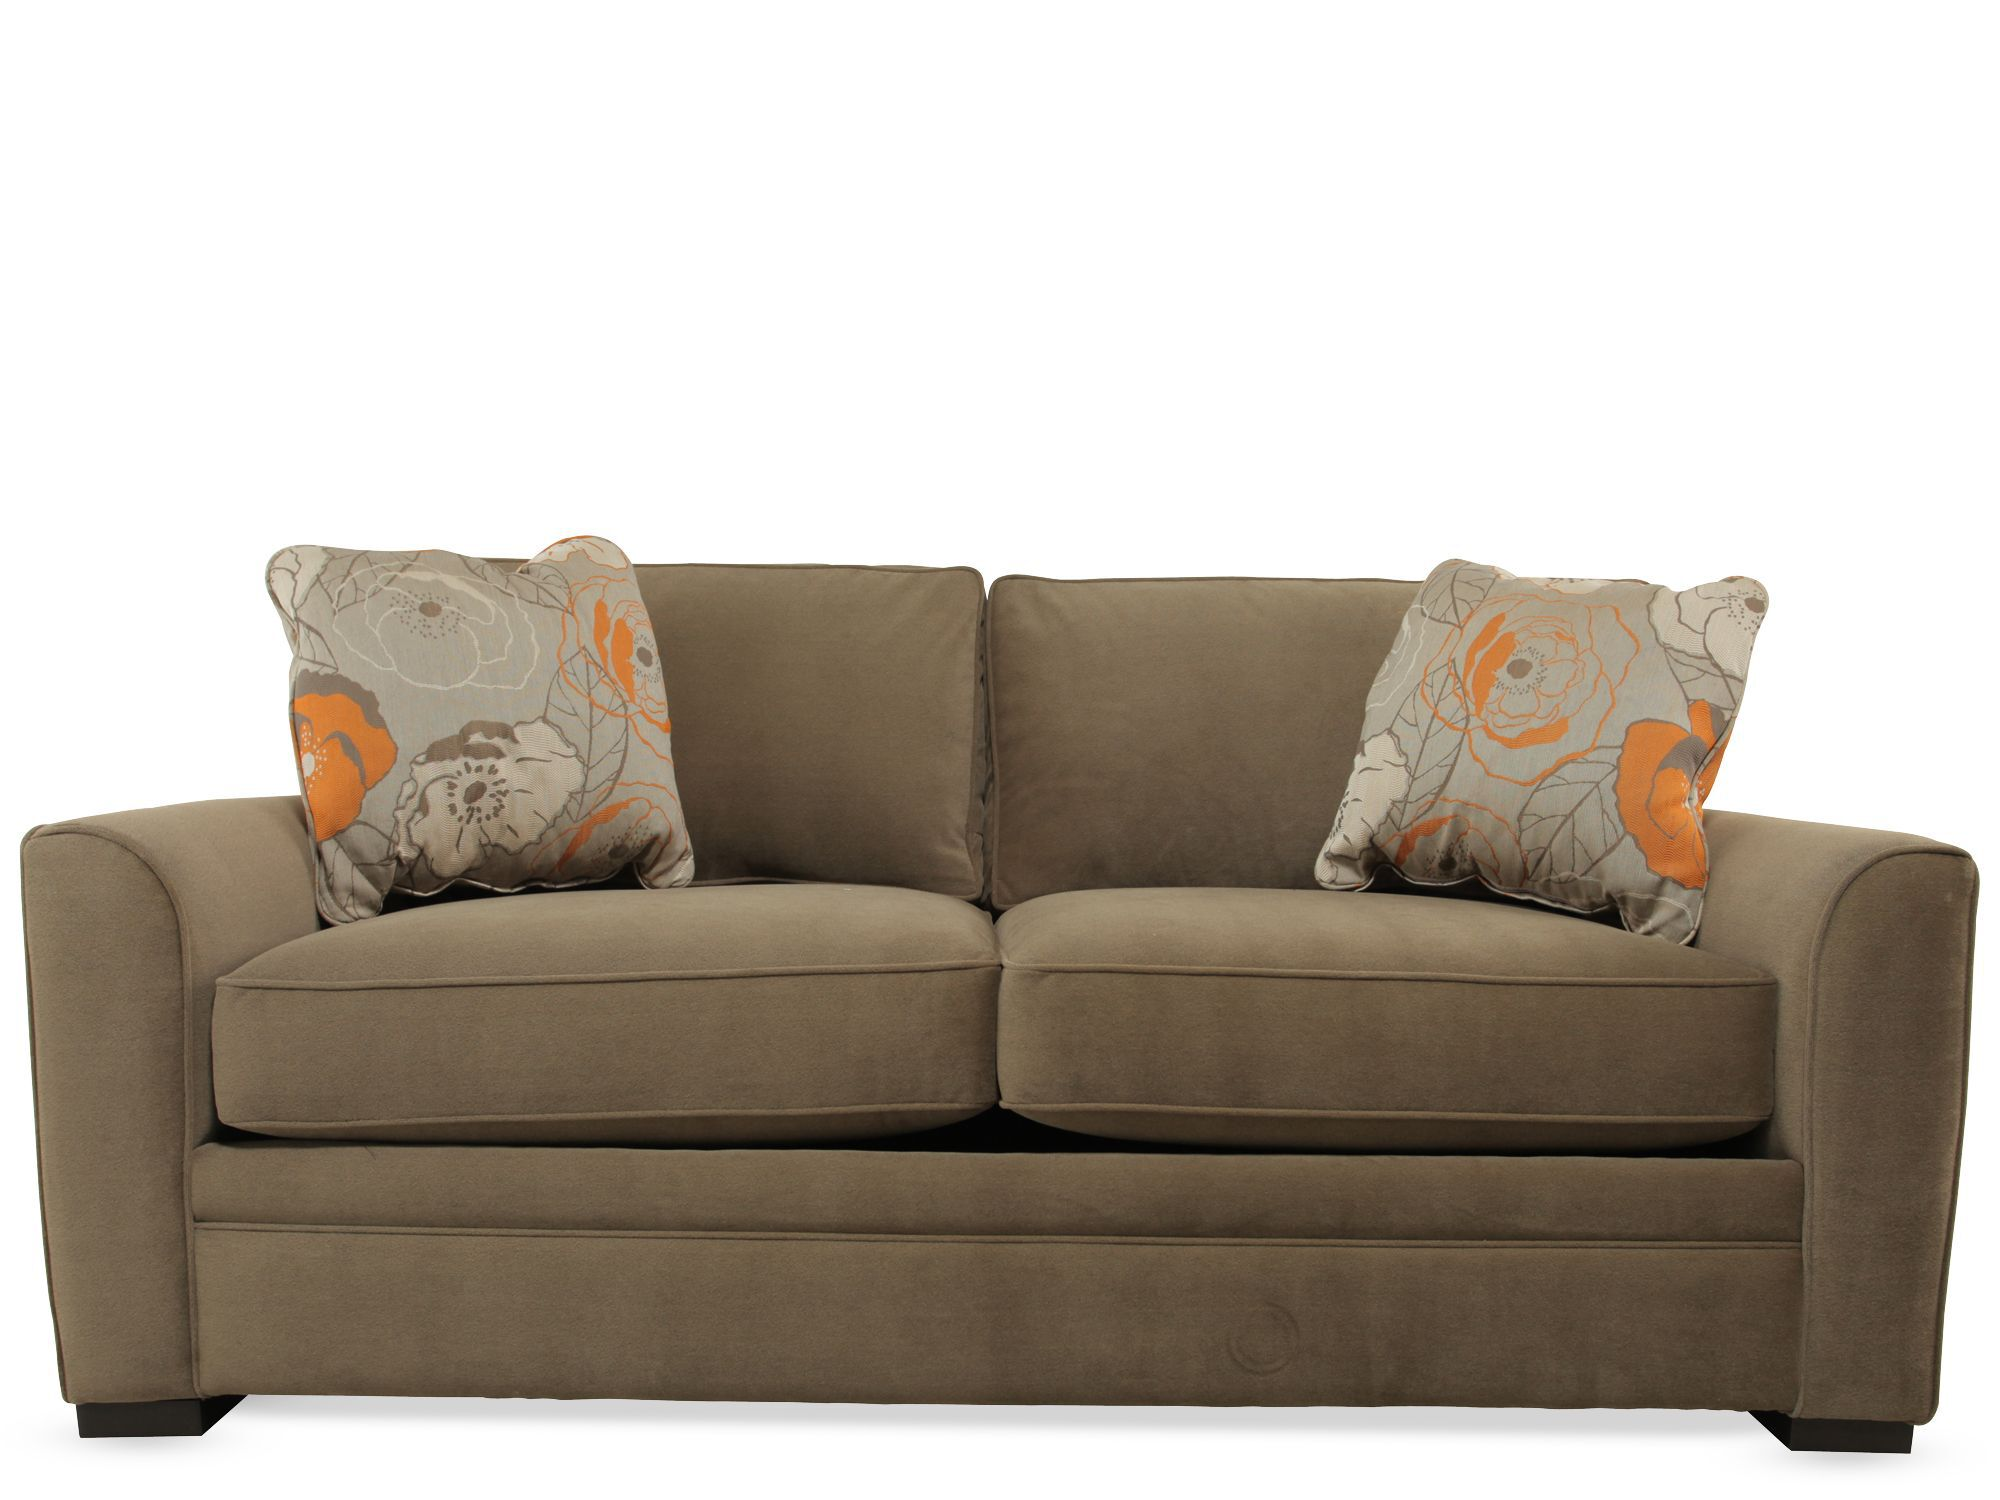 jonathan louis sofa bed fabric and leather dfs full sleeper with air mattress